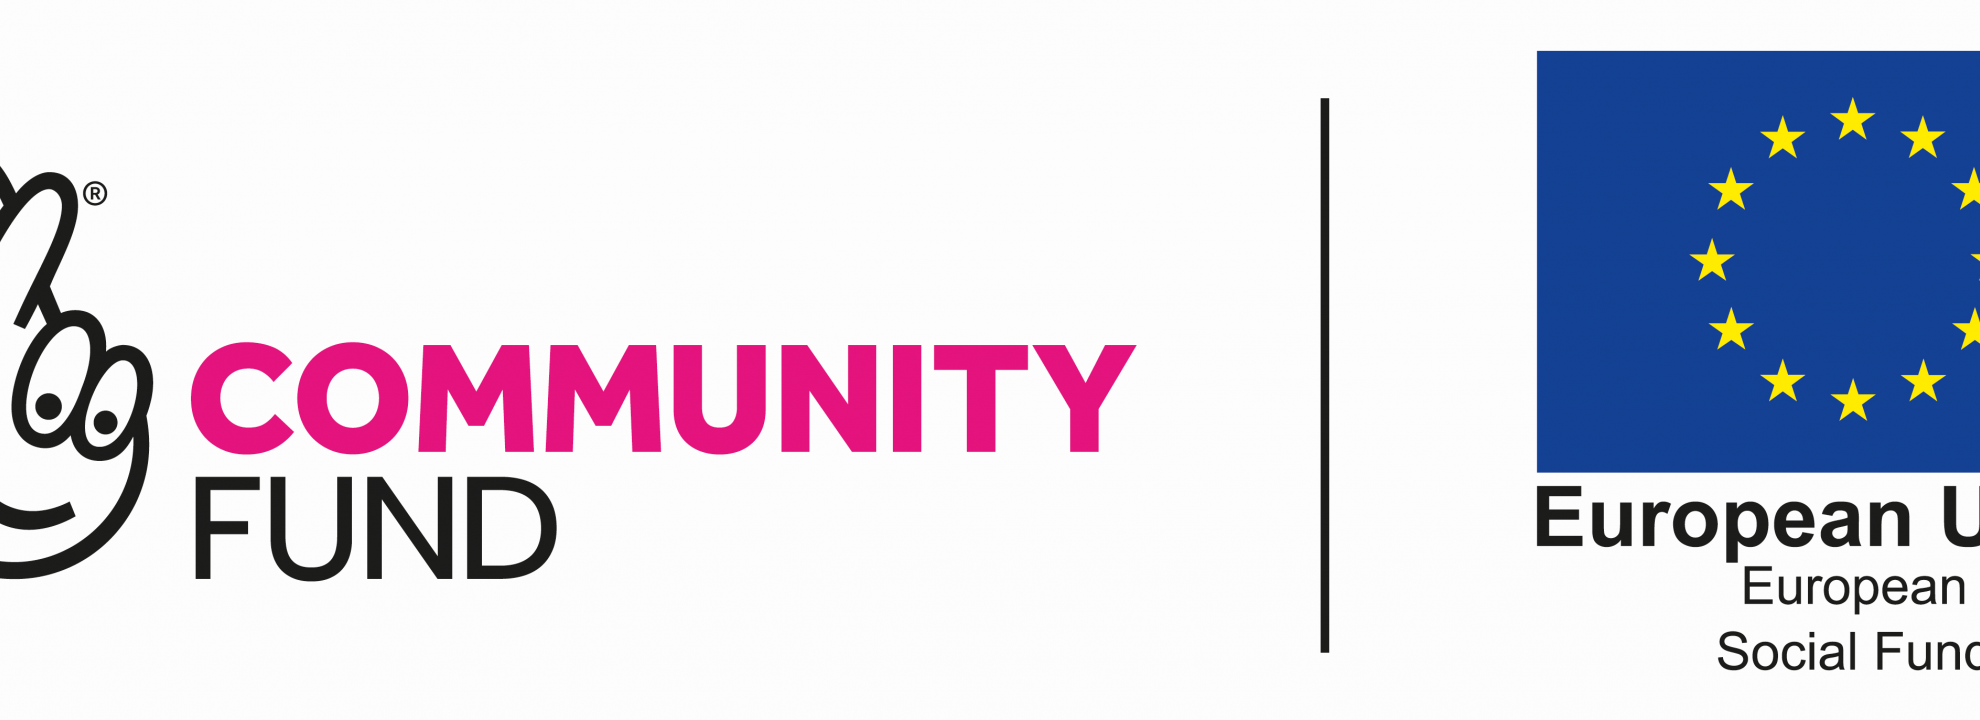 Community Resilience through Healthy Lifestyles Innovation Forum Banner